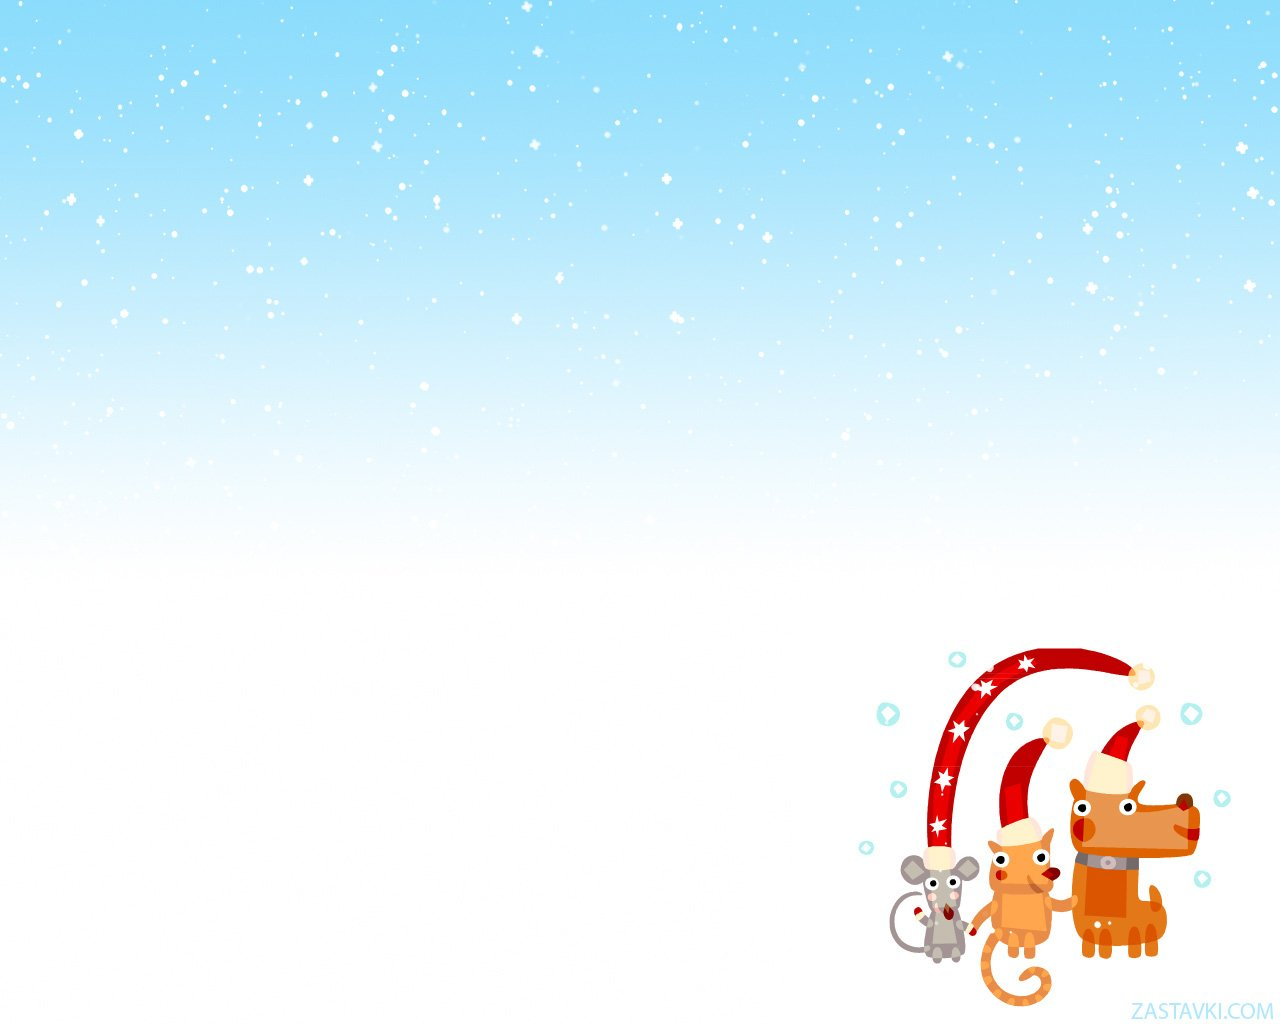 Download animated Christmas background for MySpace 1280x1024